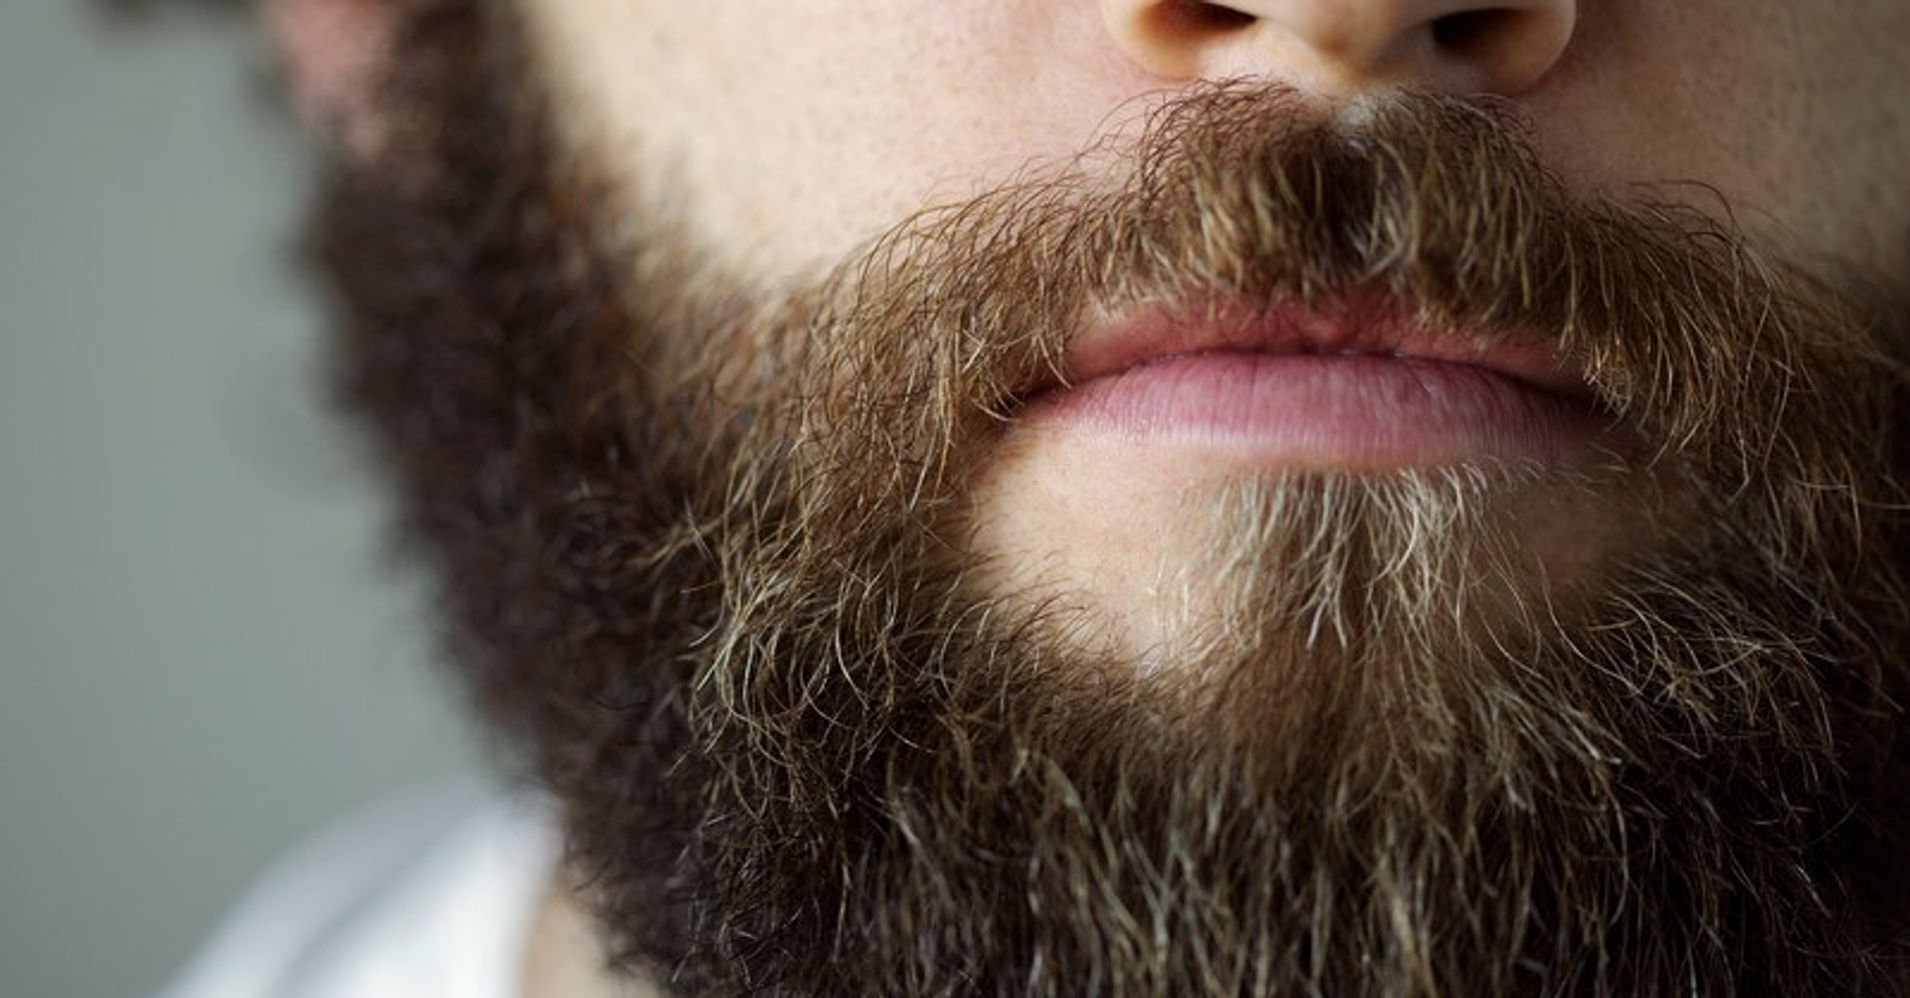 Weird Facial Hair Styles: How To Get Rid Of Beard-Related Pimples